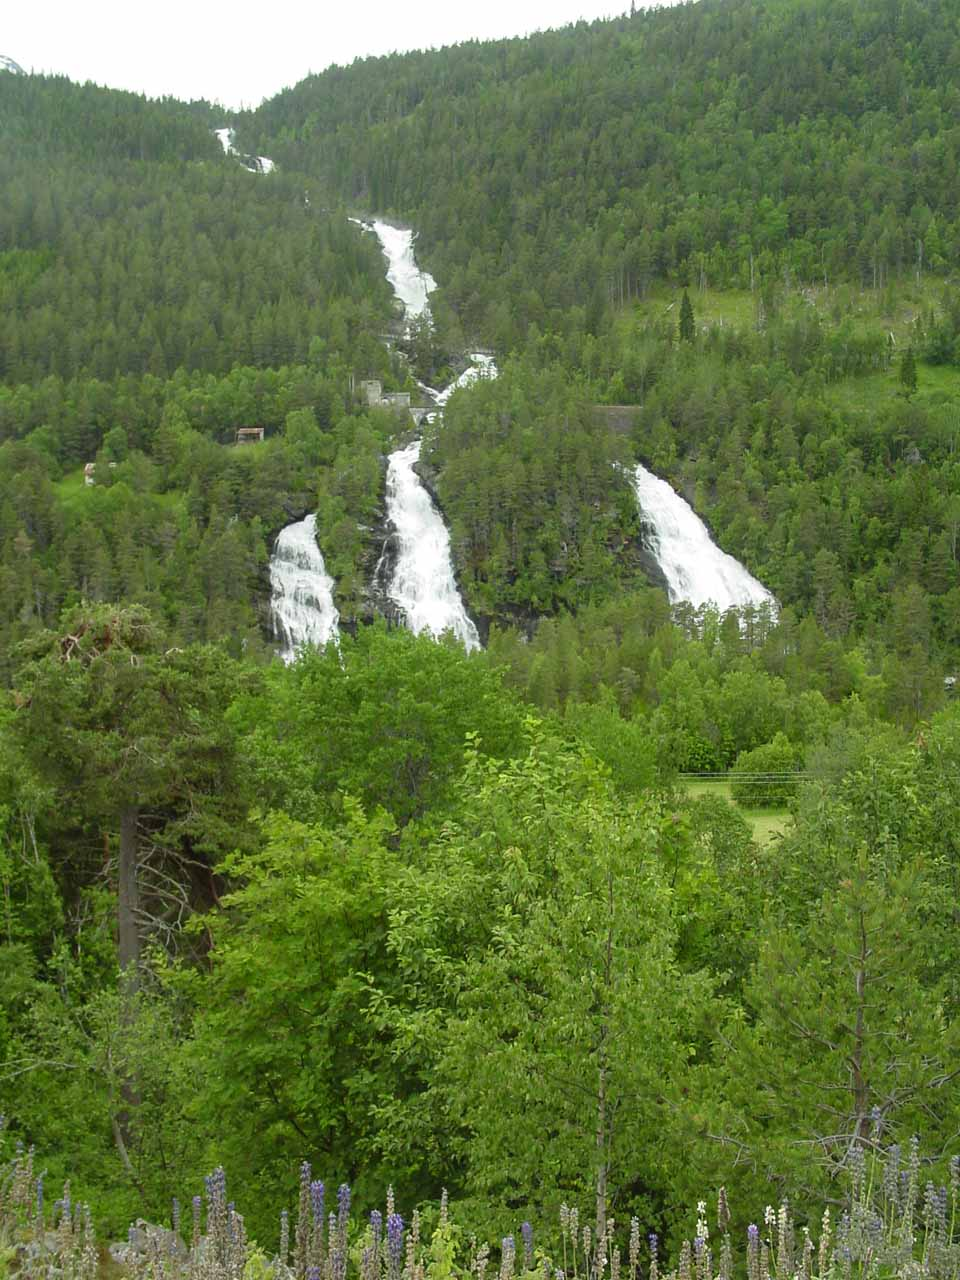 Our first look at Vermafossen